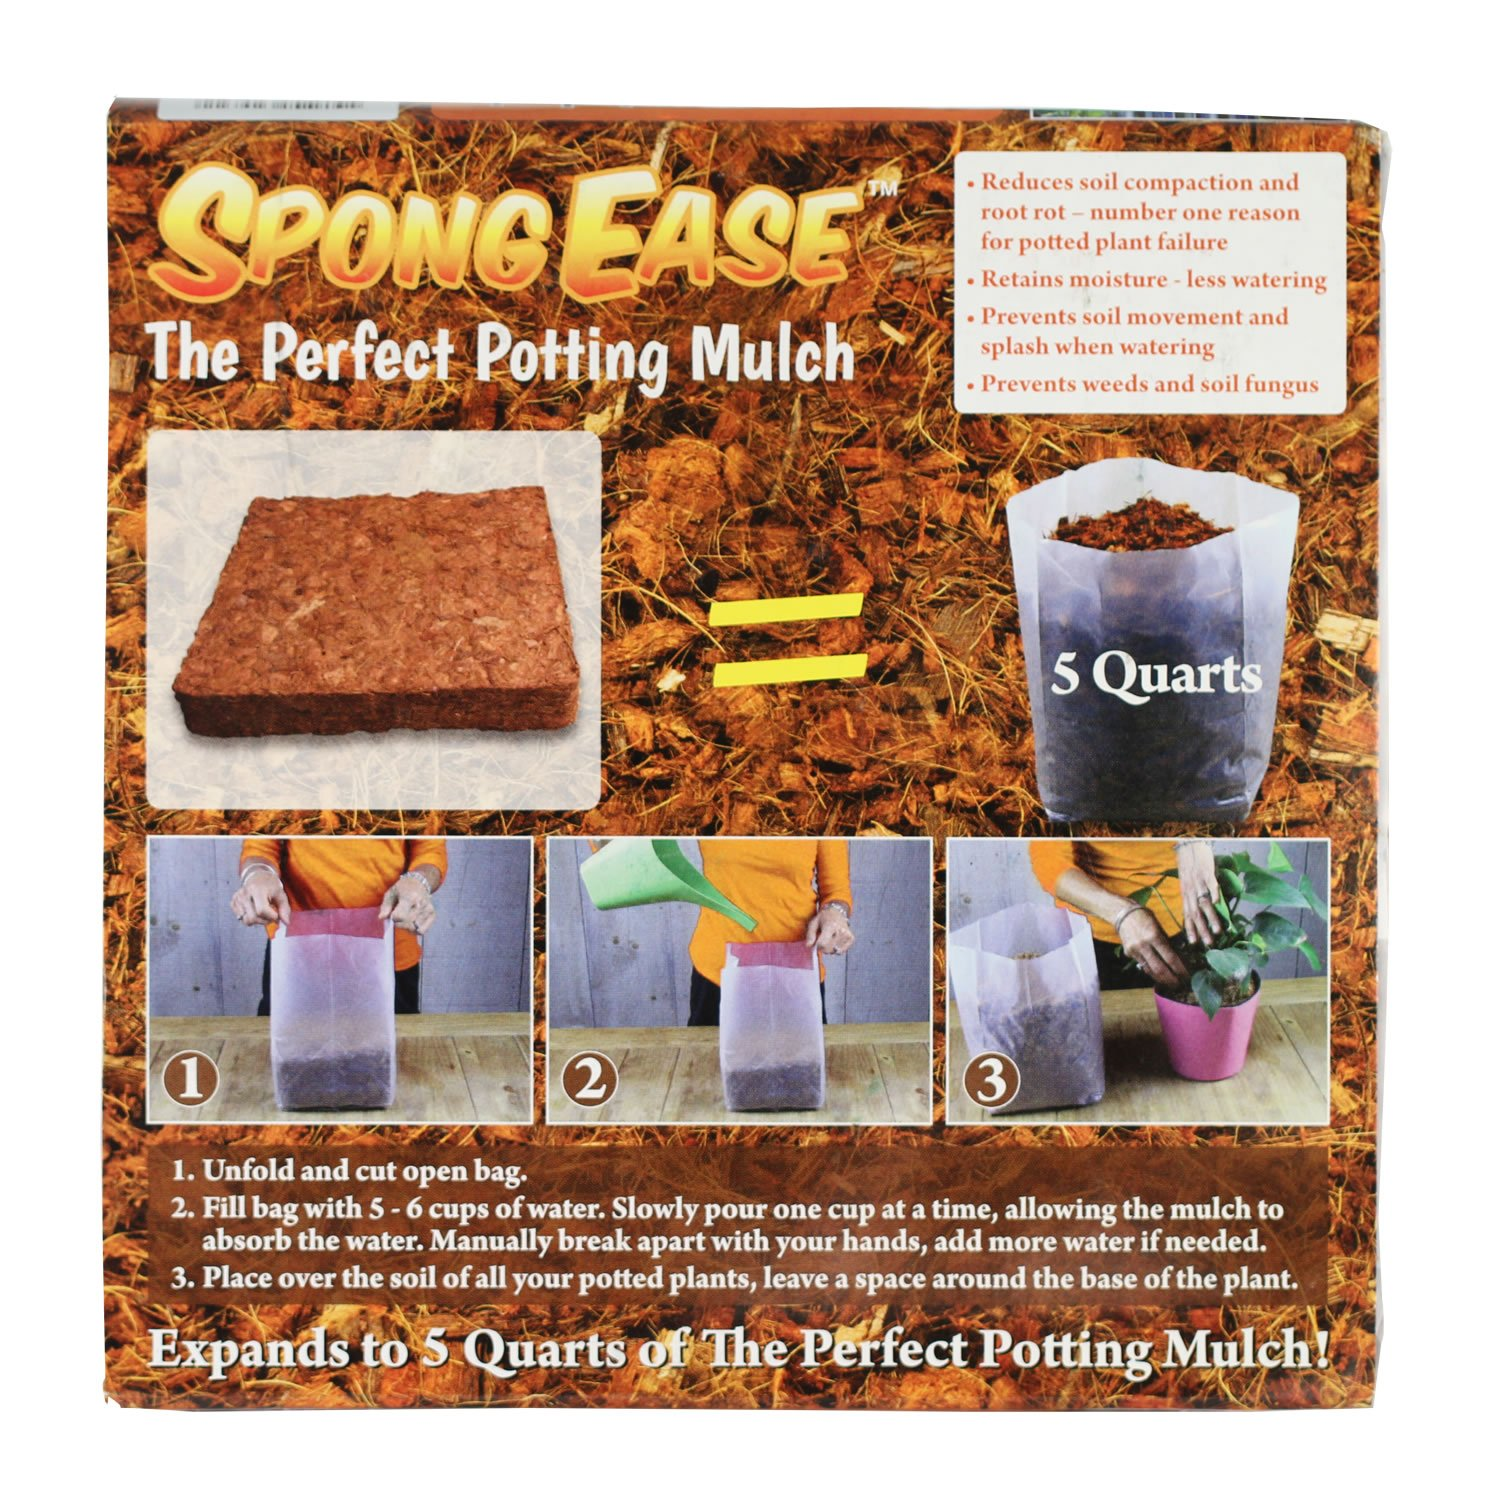 SpongEase Coco Fiber MULCH - 5 Quart for Container Plants - Coco Fiber - Retains Water, Restricts Weed Growth SEM5QT